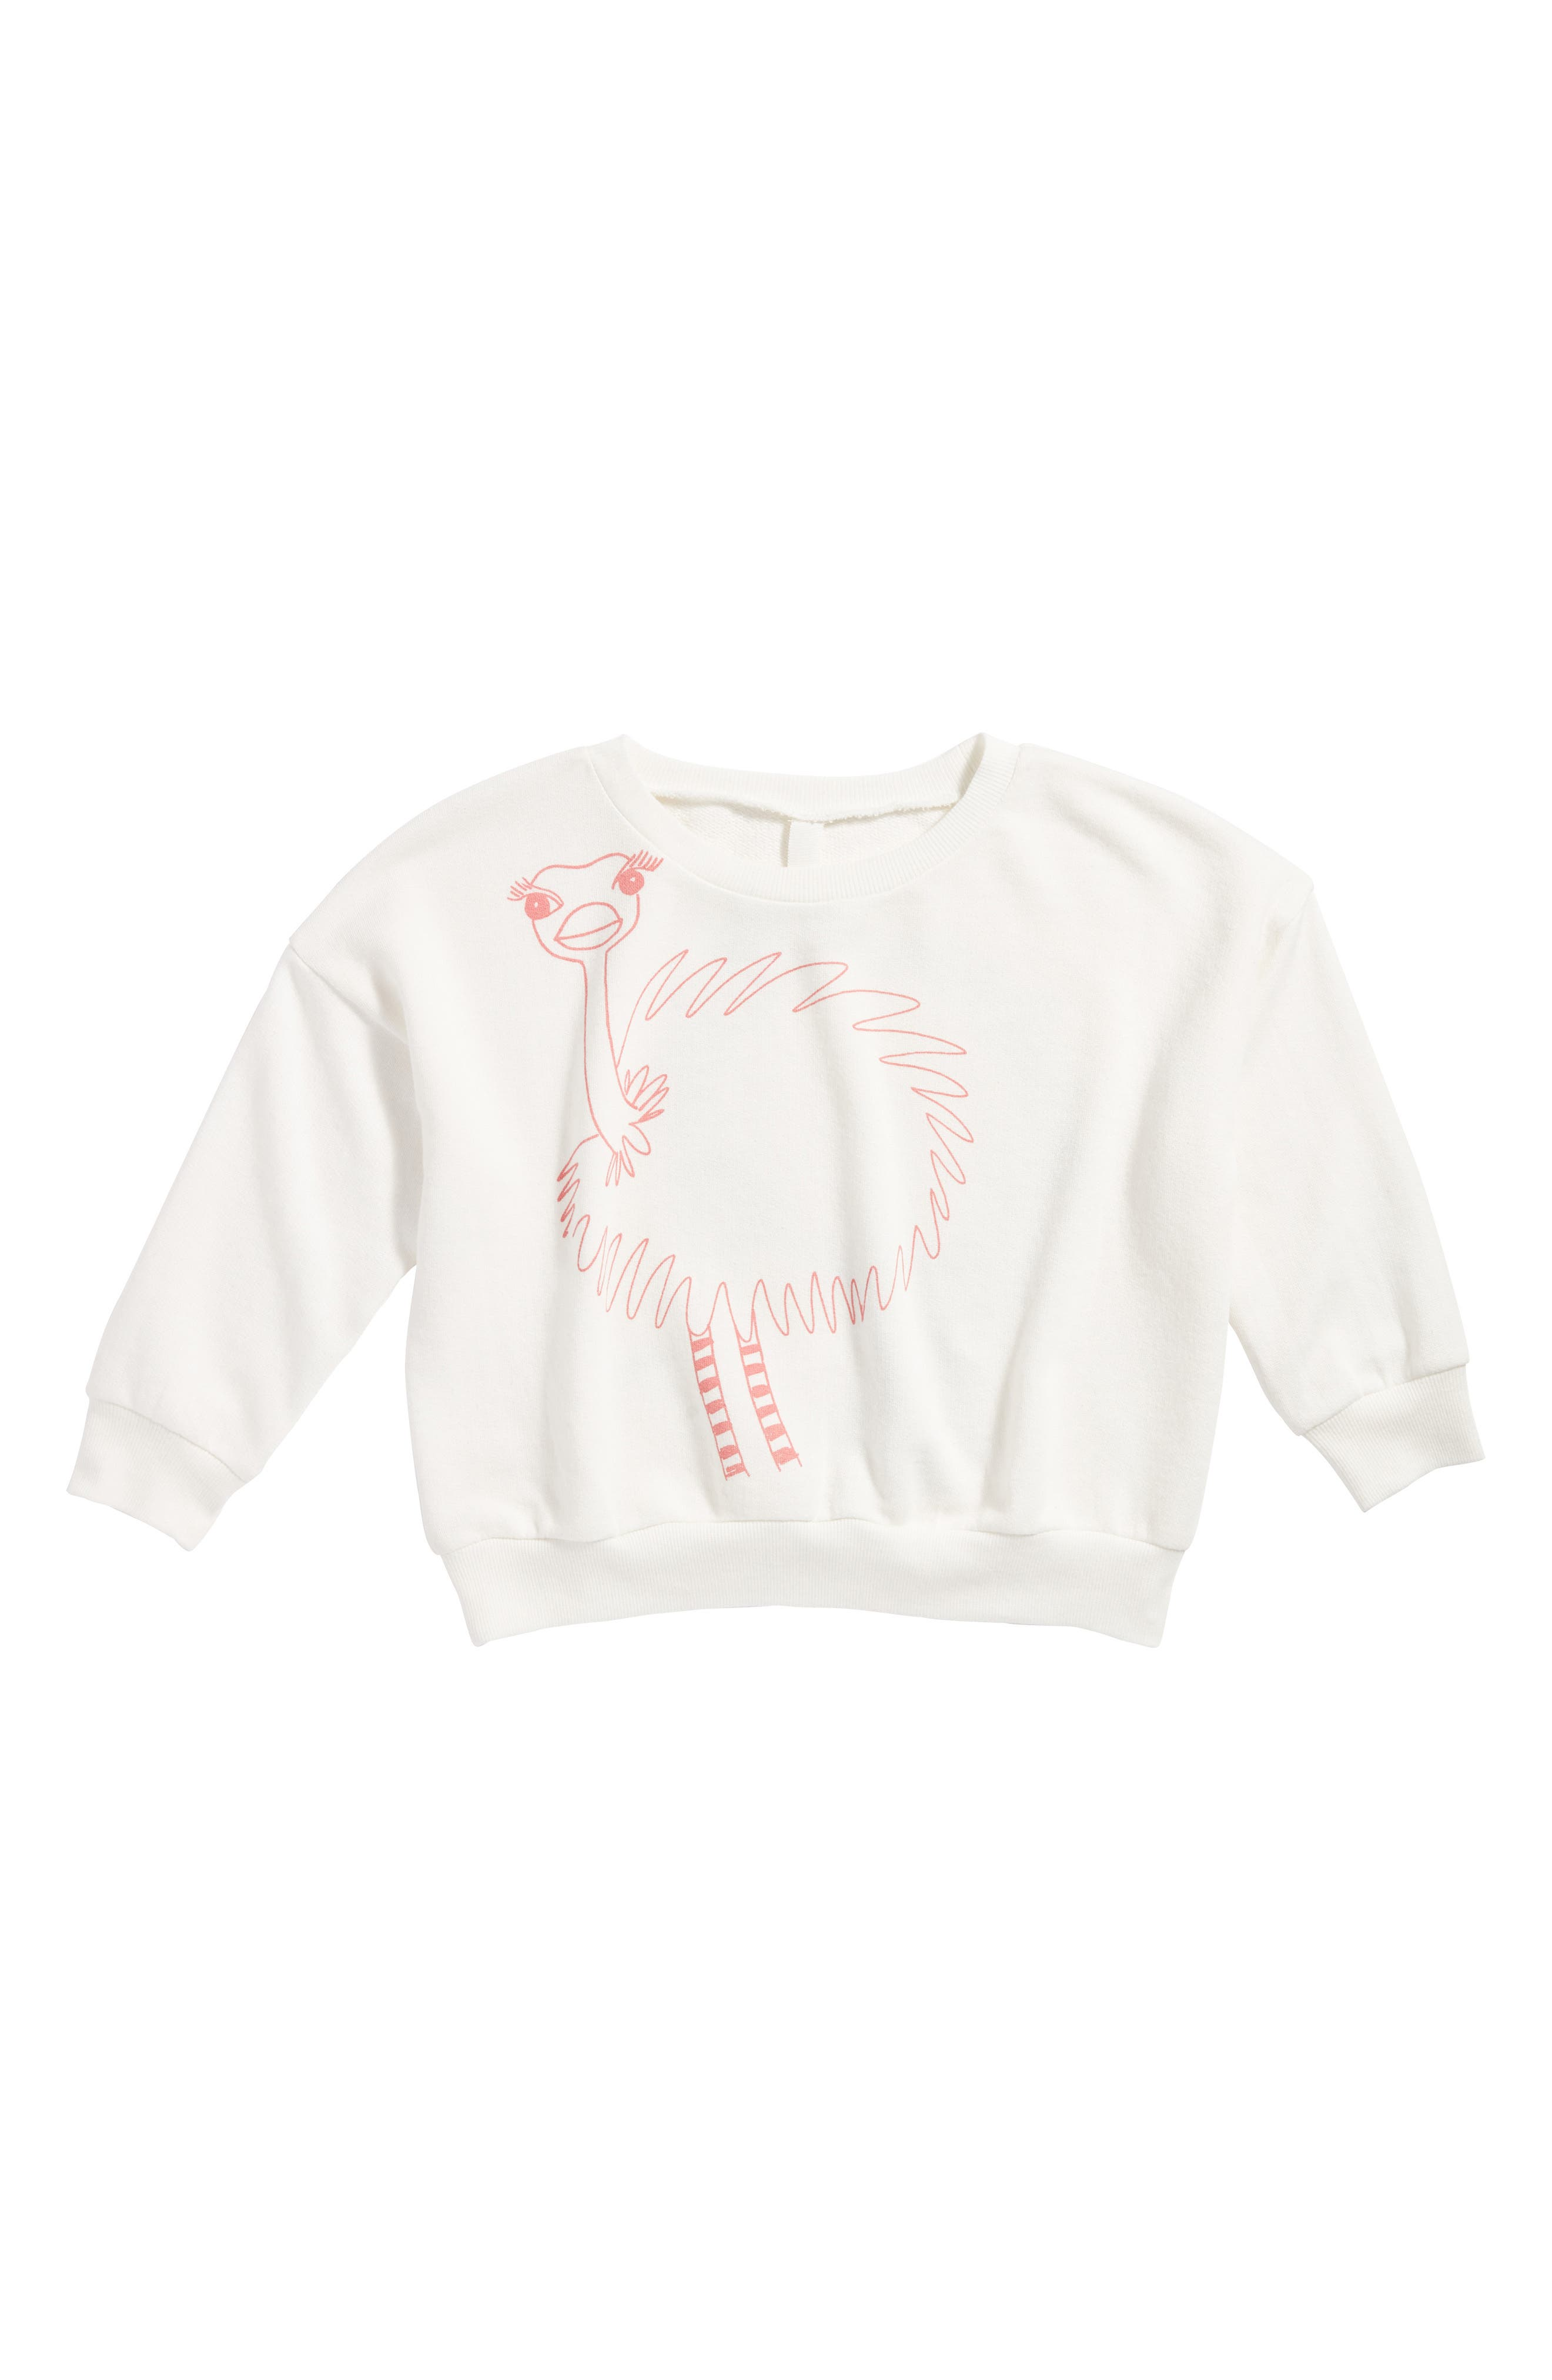 Stem Ostrich Graphic Sweatshirt (Toddler Girls, Little Girls & Big Girls)